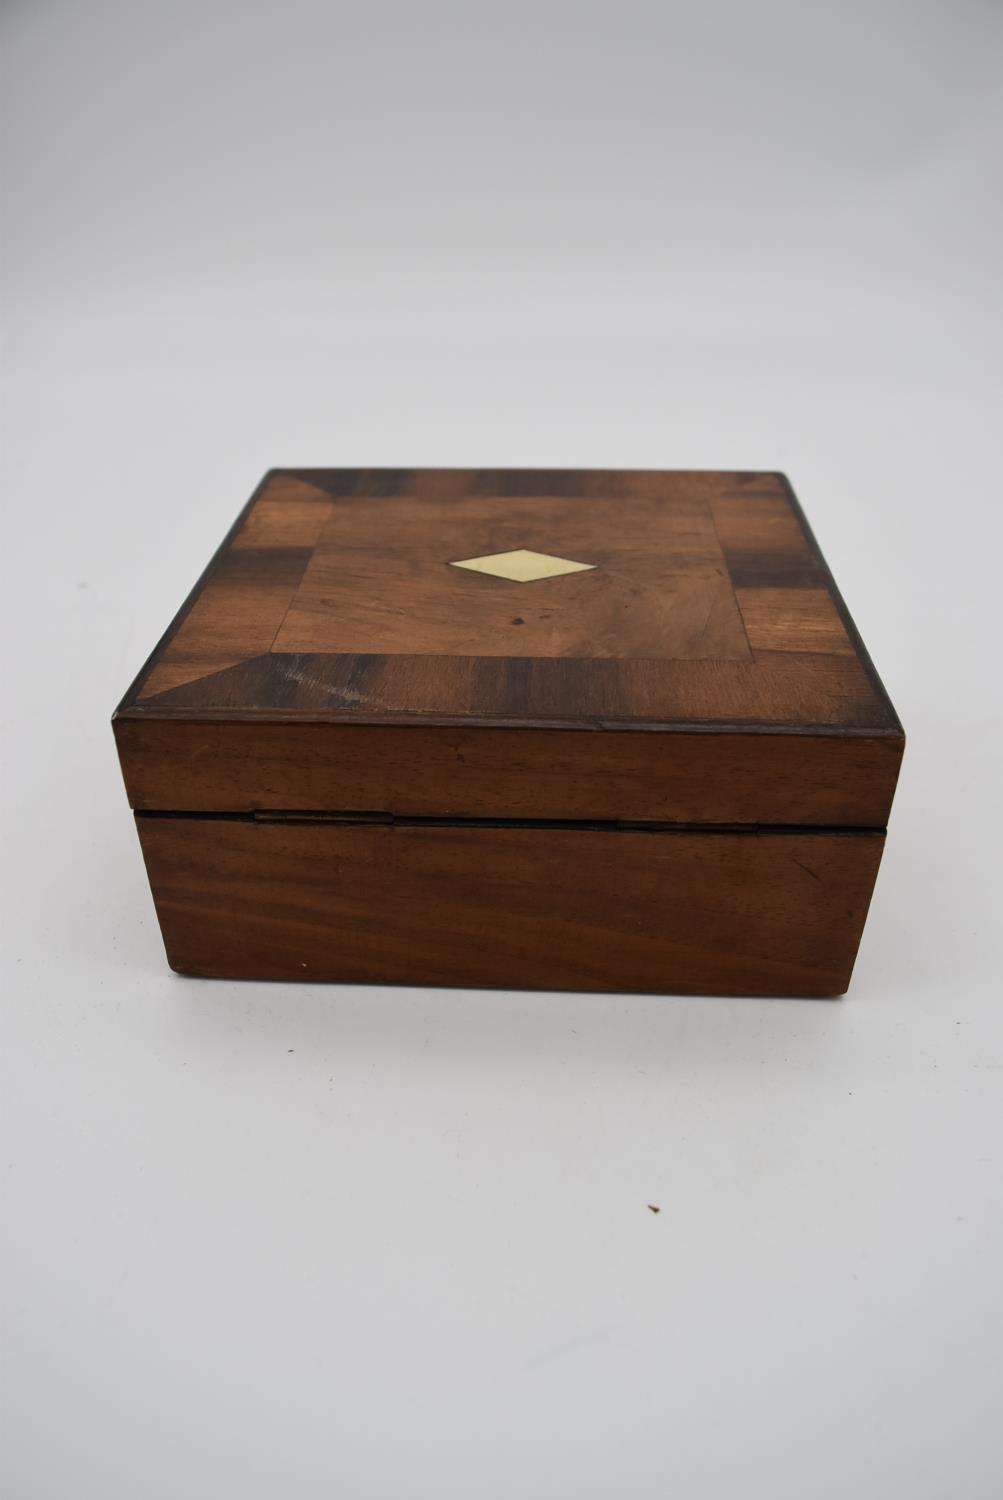 A 19th century burr walnut and crossbanded jewellery box snd two other 19th century Tunbridgeware - Image 4 of 4